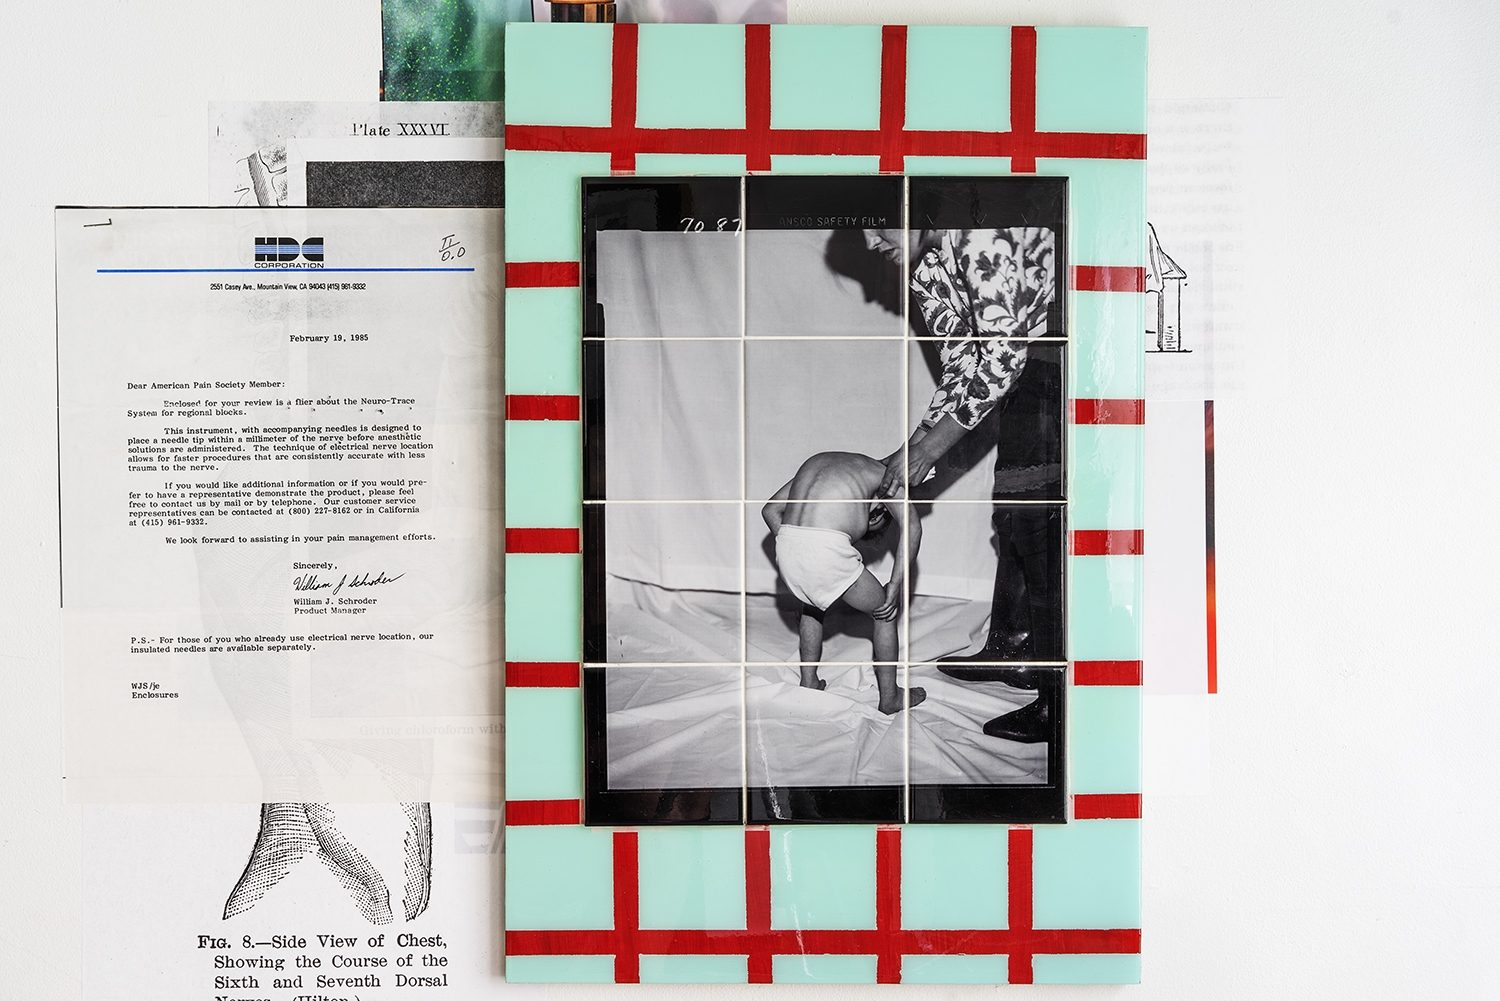 Clinical Photograph Illustrating Spinal Curvature, 1987*, reproduced 2019, dye sublimation print on ceramic tiles, grout, resin